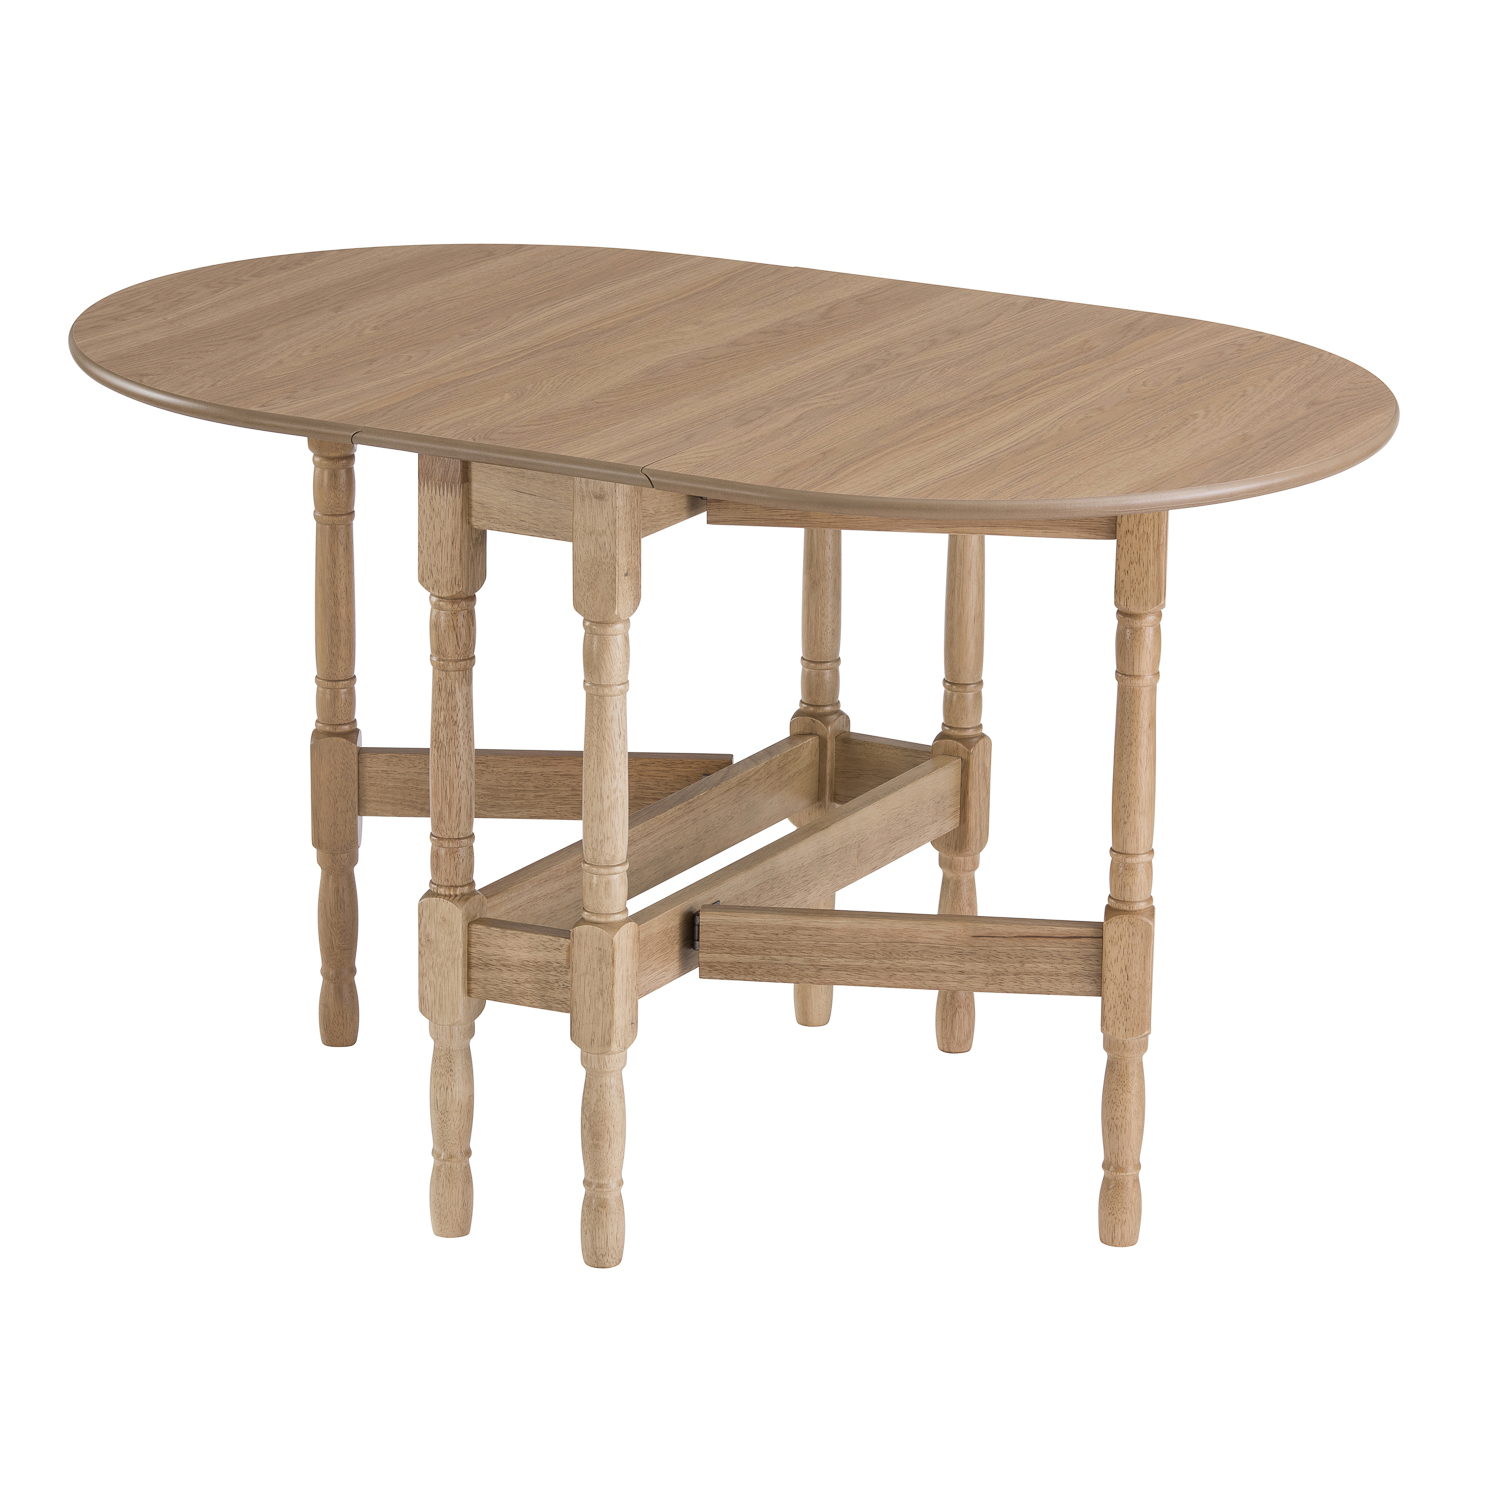 Drop Leaf Table HEATPROOF Folding Dining Kitchen Gateleg  : Web 1914 from www.ebay.co.uk size 1500 x 1500 jpeg 527kB